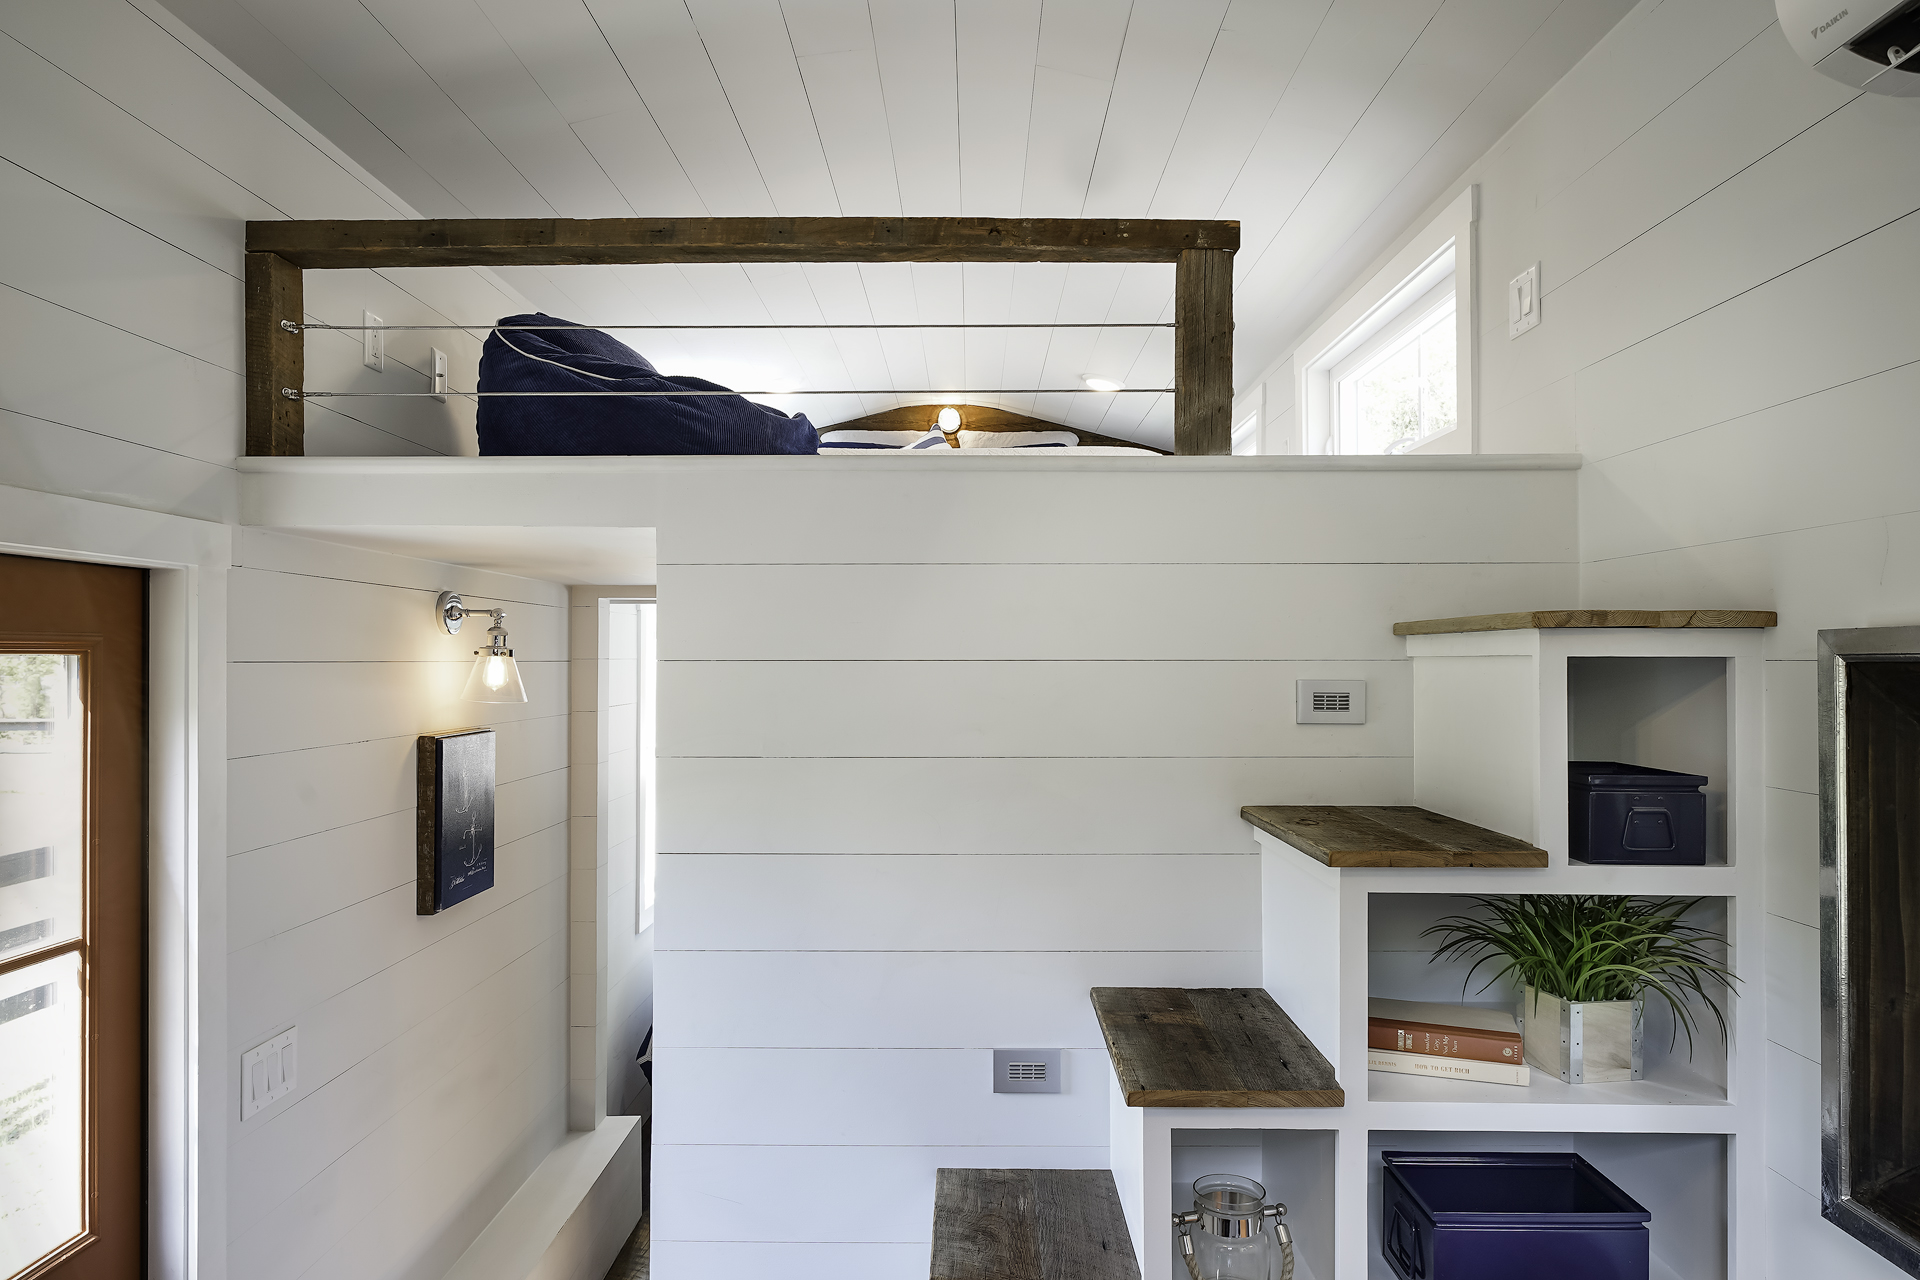 Tiny House Interior 5 tiny house designs perfect for couples - curbed